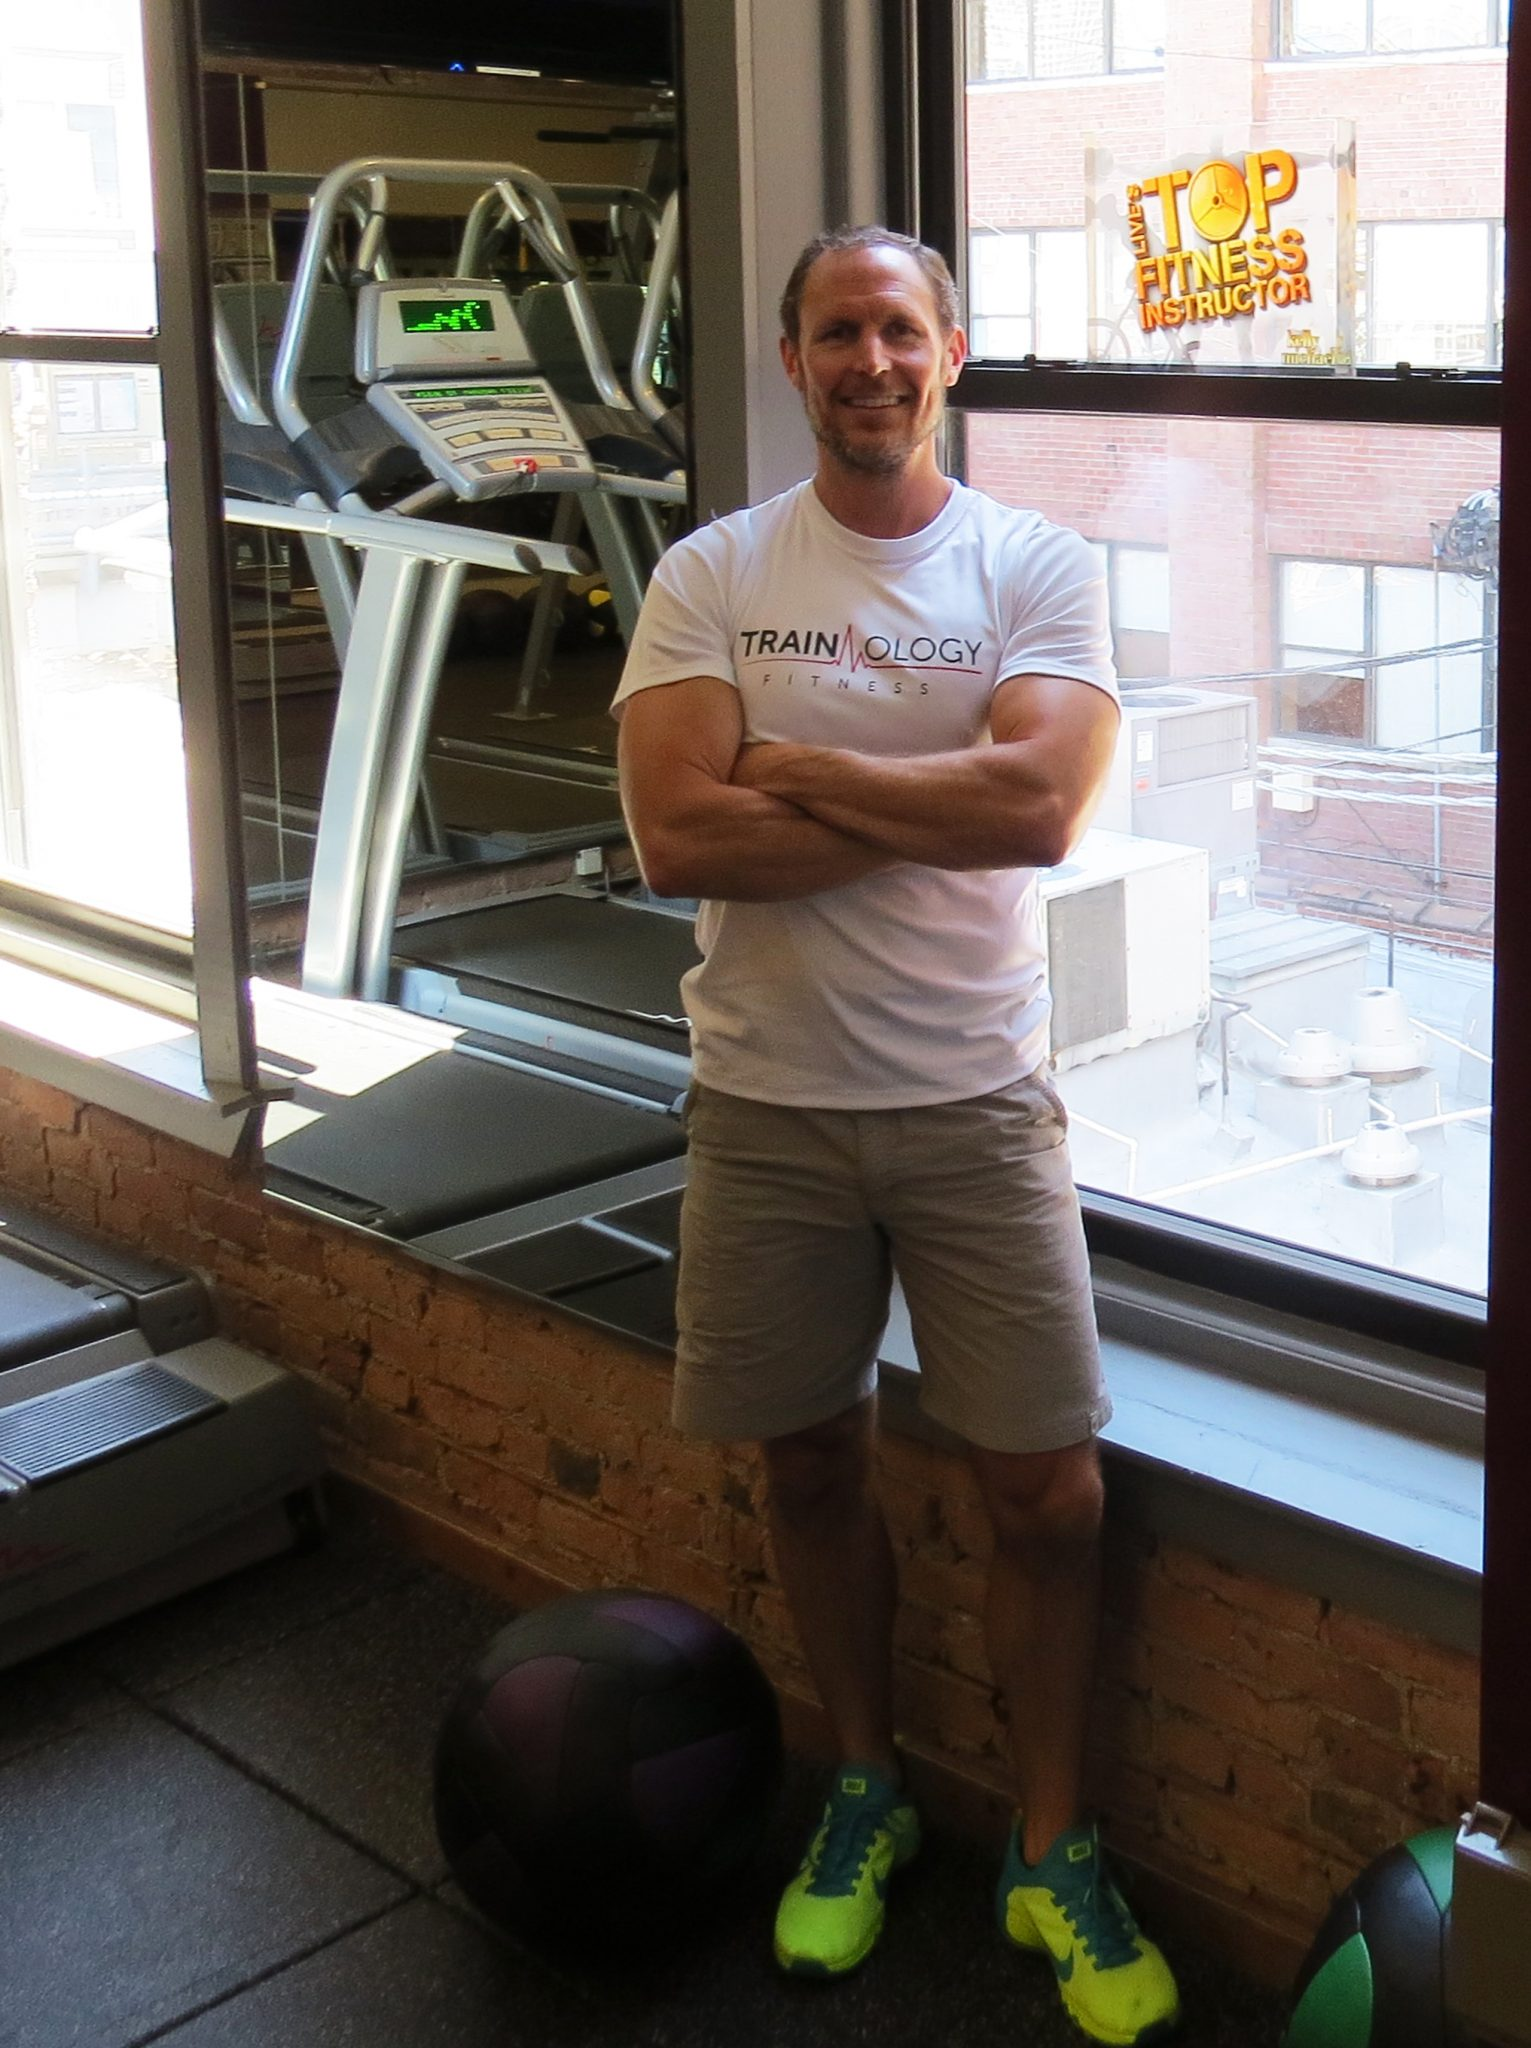 asweatlife fabfitchicago Workout at Home with Michael Wollpert of TRAINology glideology